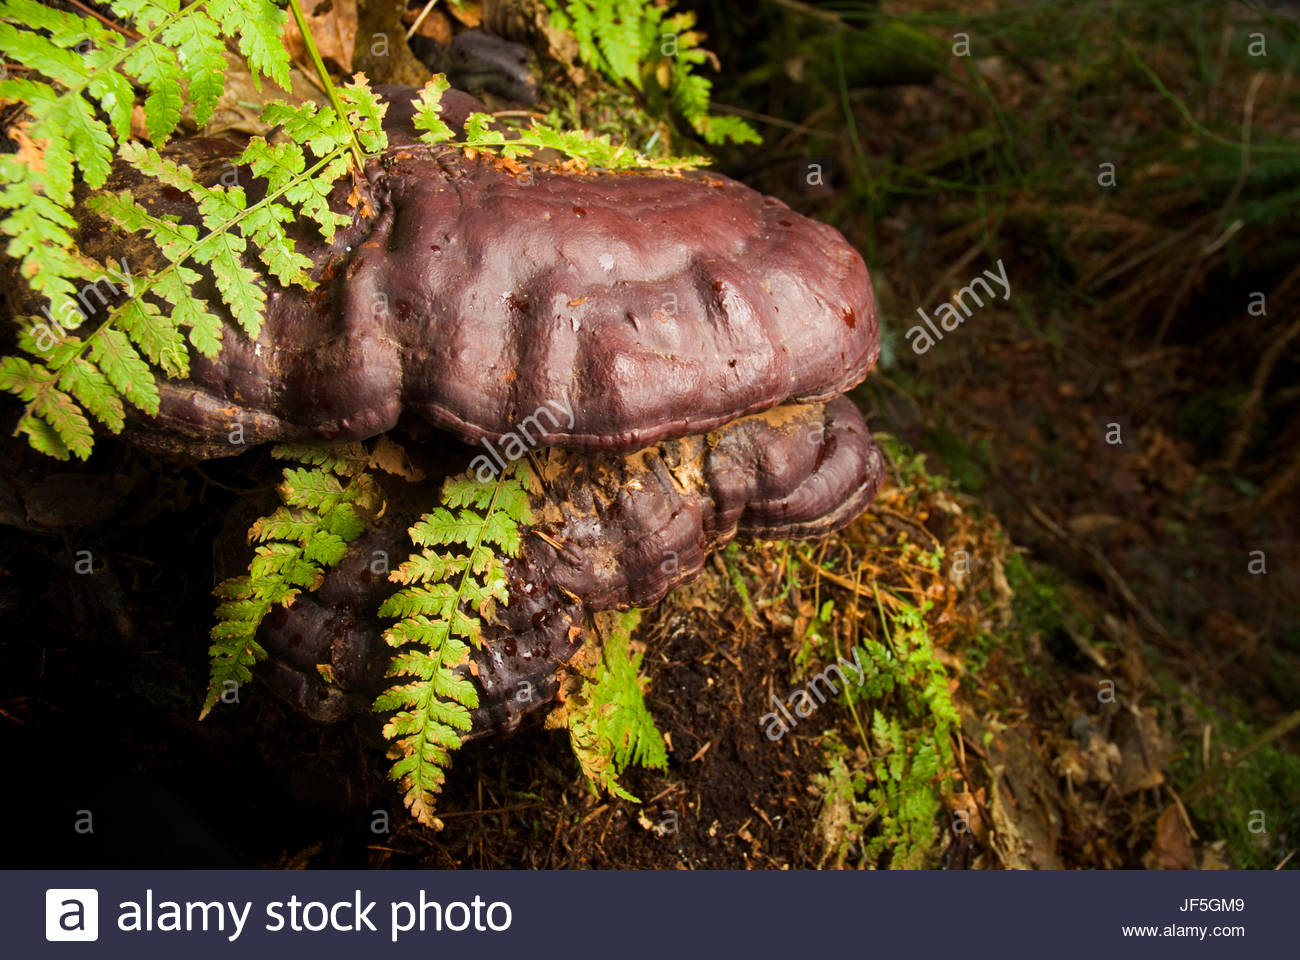 A fern enveloped by fungus. - Stock Image